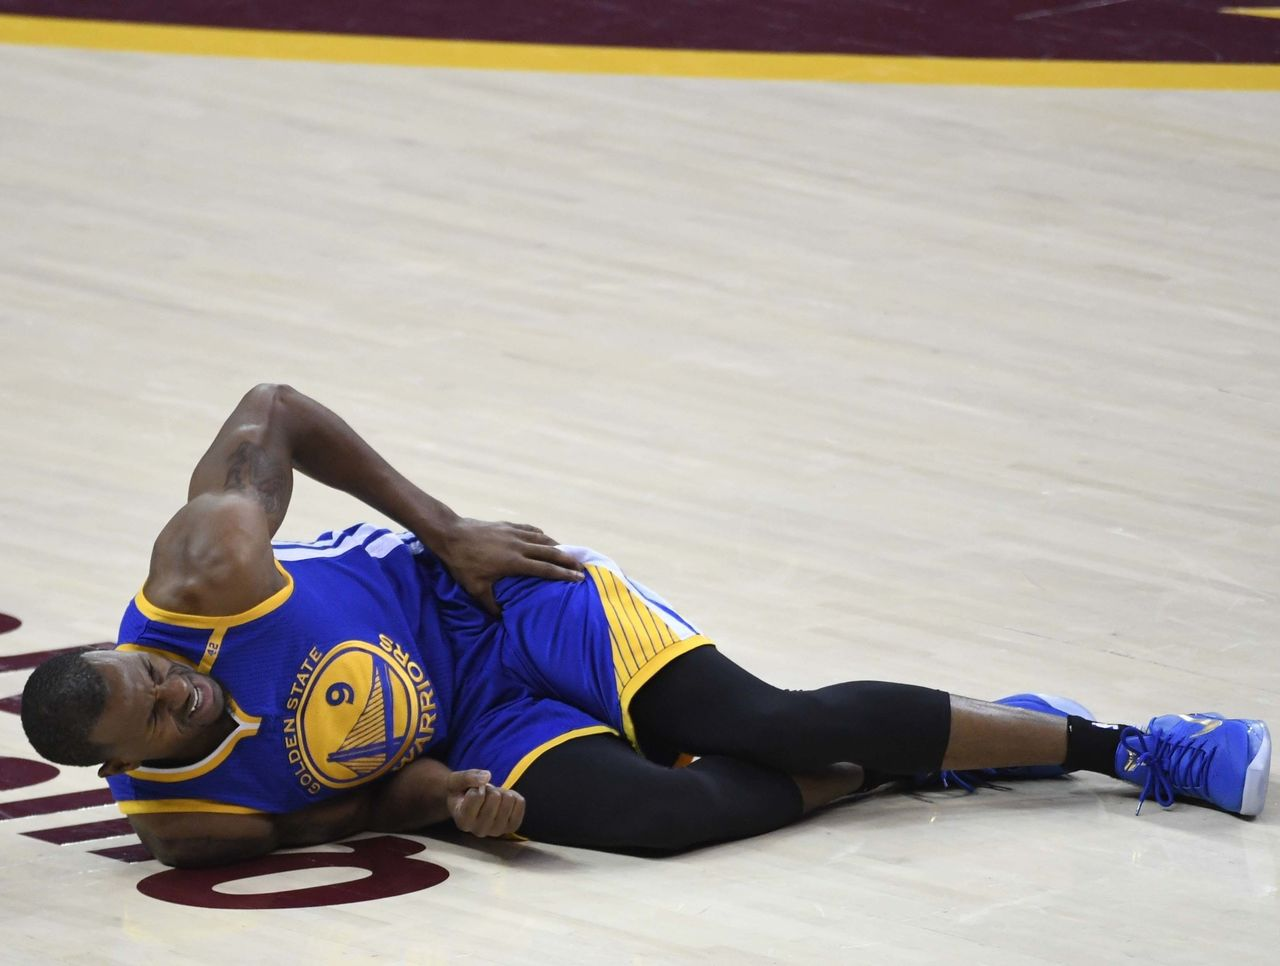 Cropped_2017-06-08t020219z_1684818037_nocid_rtrmadp_3_nba-finals-golden-state-warriors-at-cleveland-cavaliers